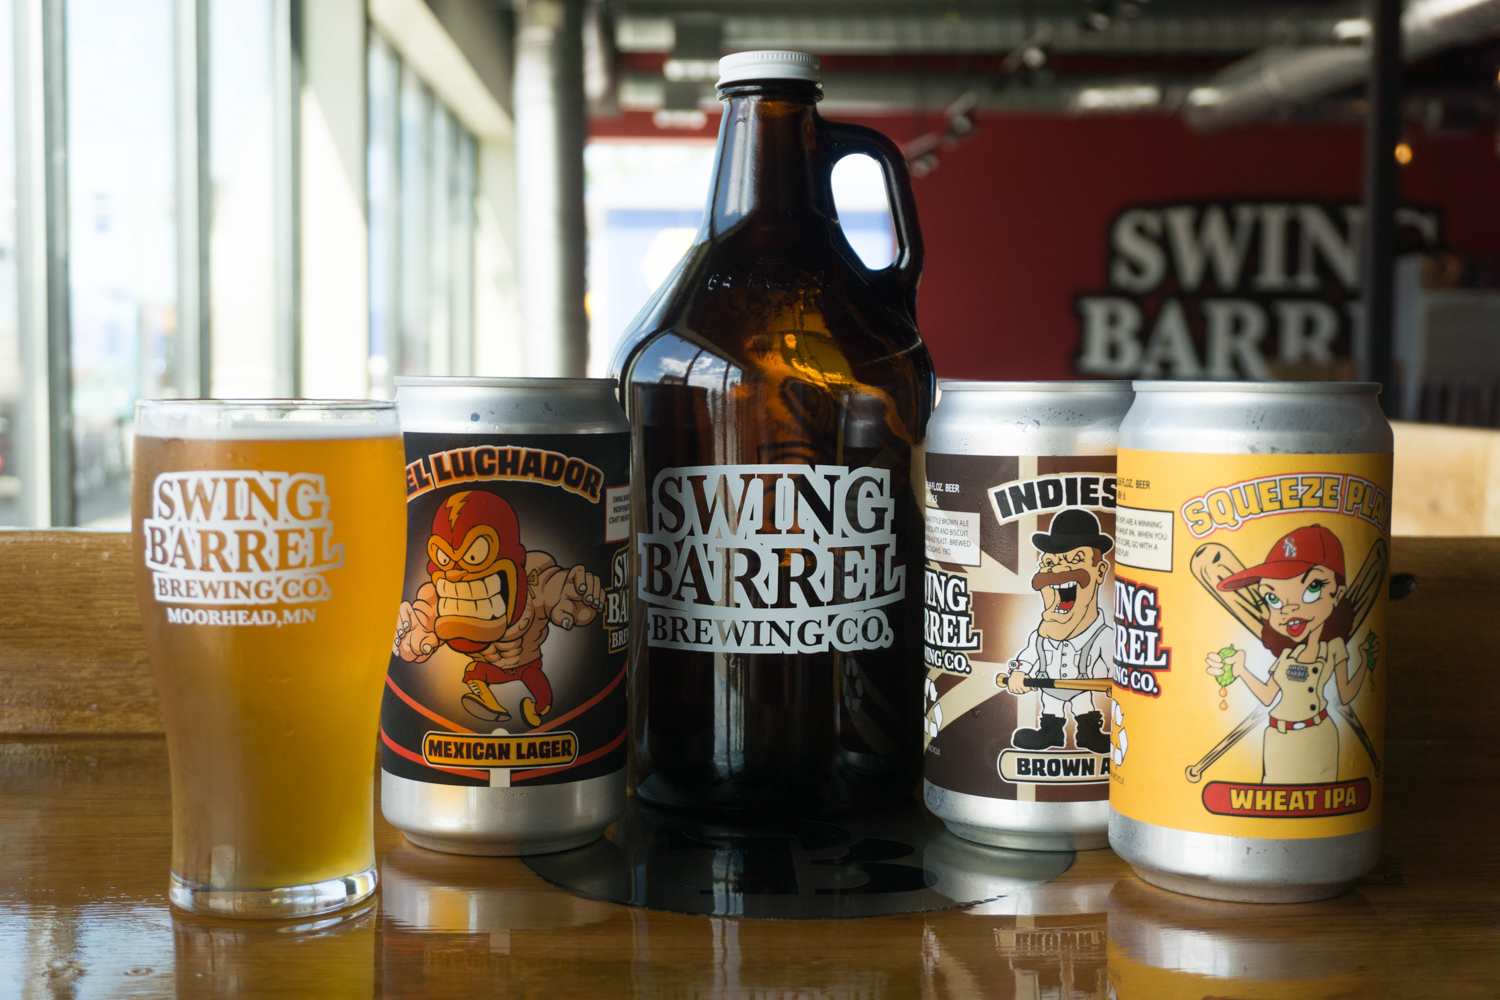 Swing Barrel Brewing Co. in Moorhead opened in late May // Photo by Nolan Schmidt